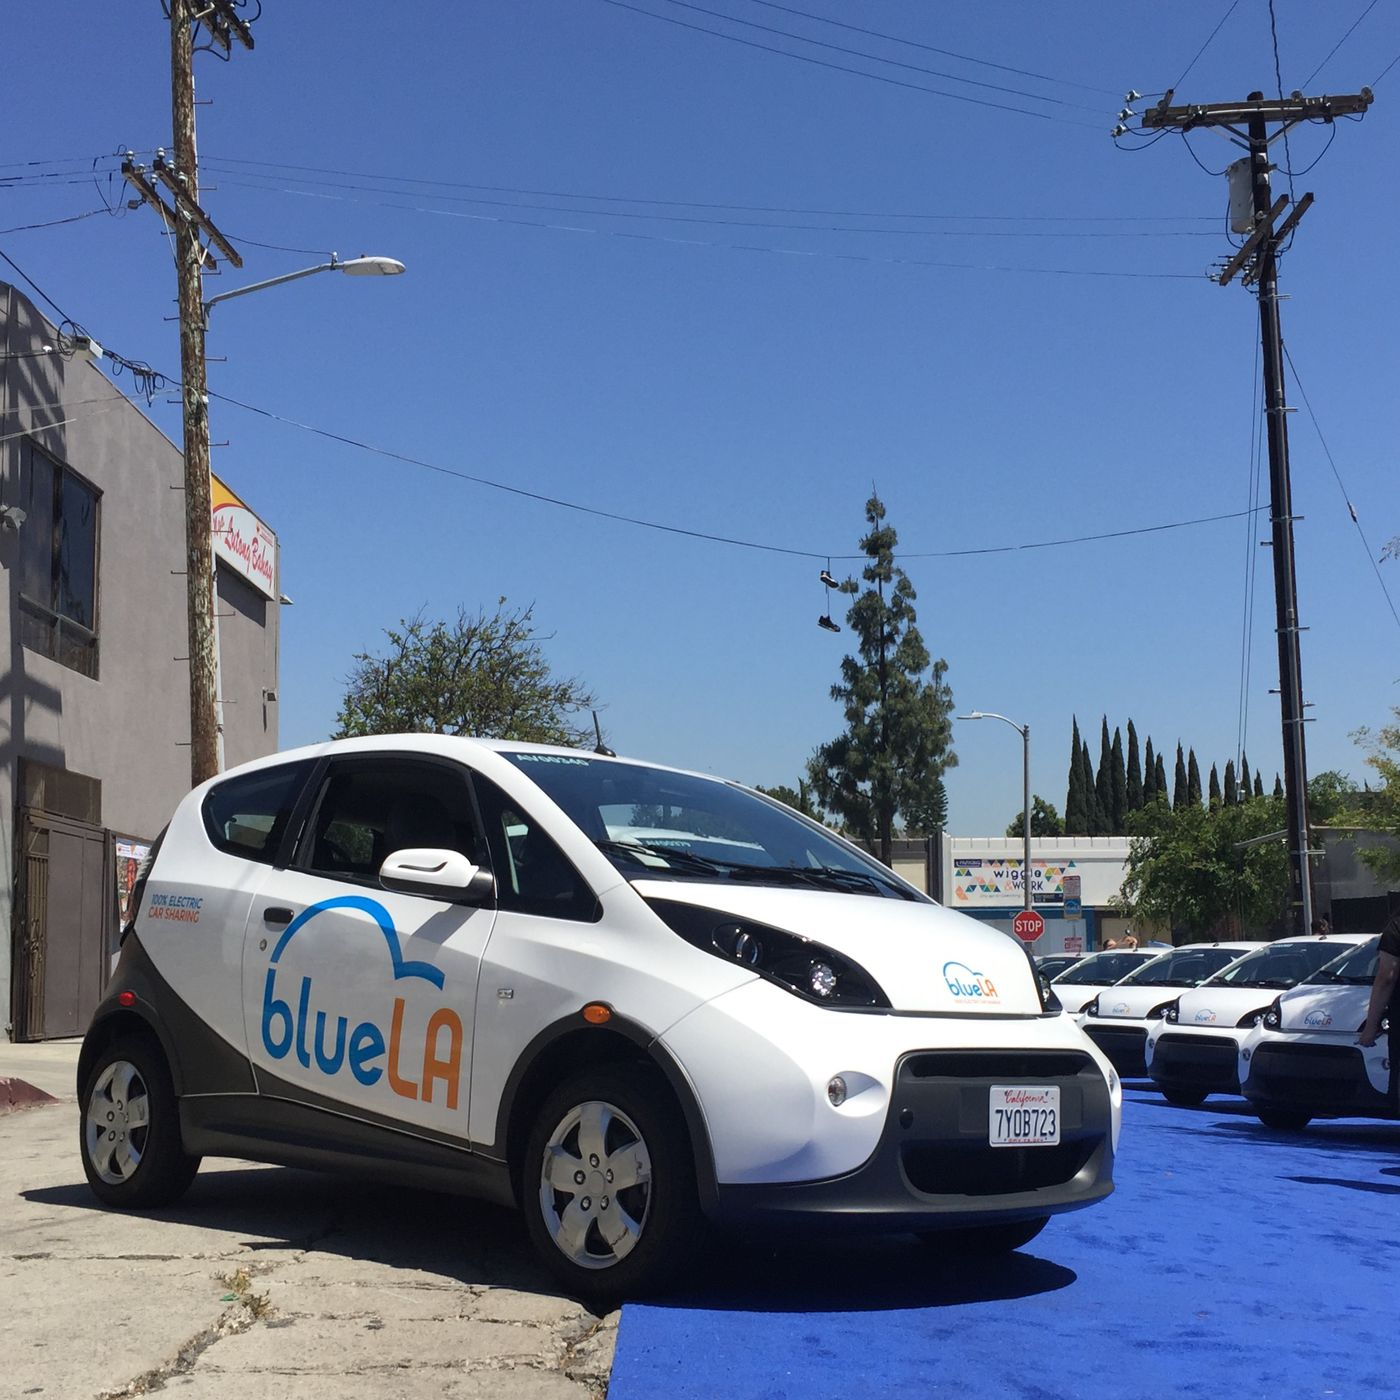 Bluela How To Use Las All Electric Car Share Program Curbed La Working Of Cars